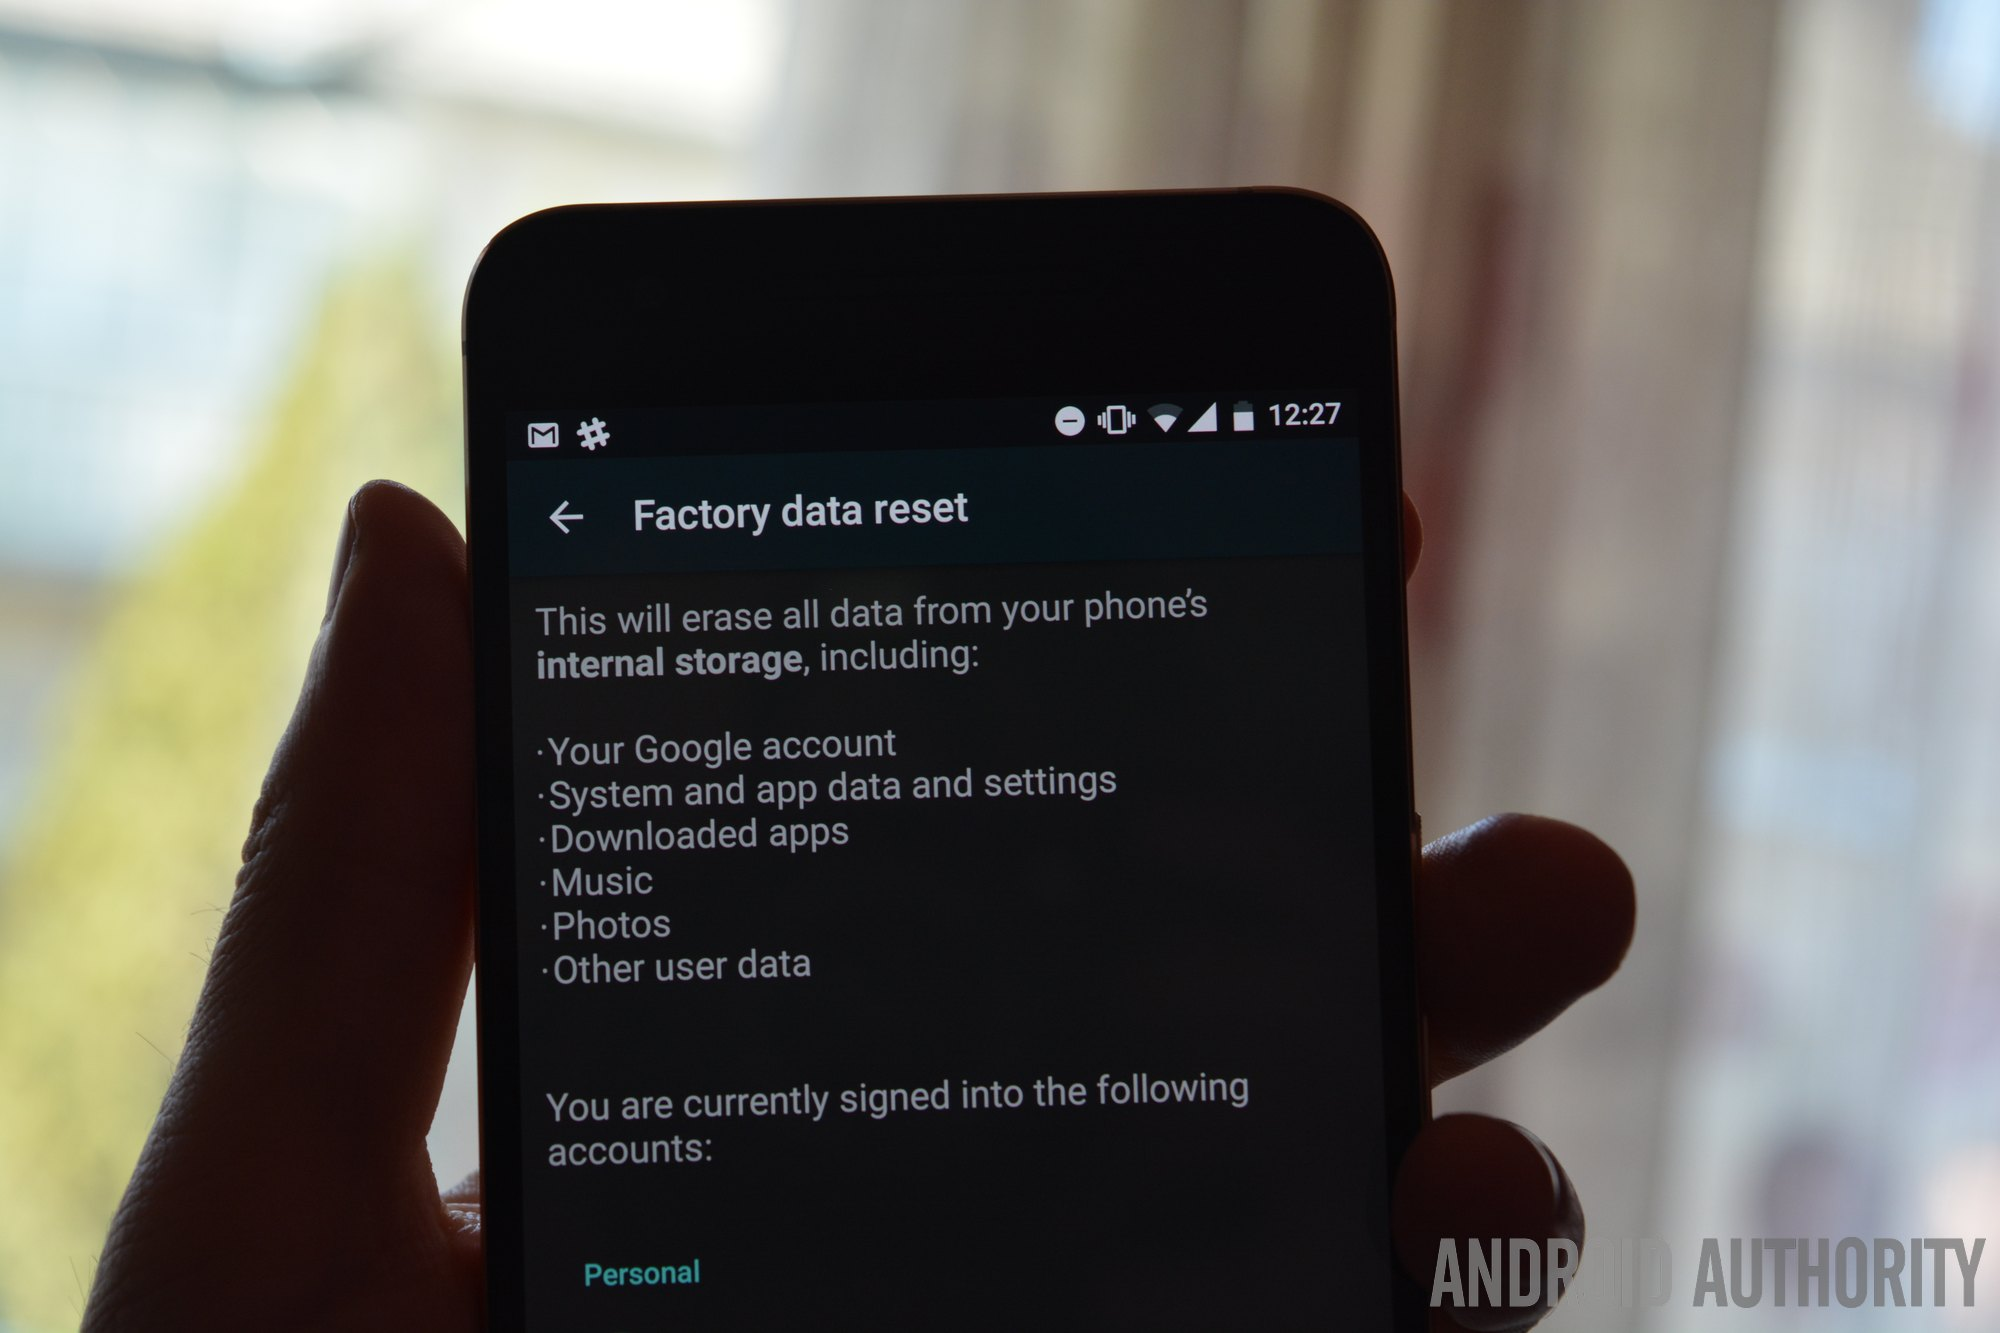 factory reset protection factory data